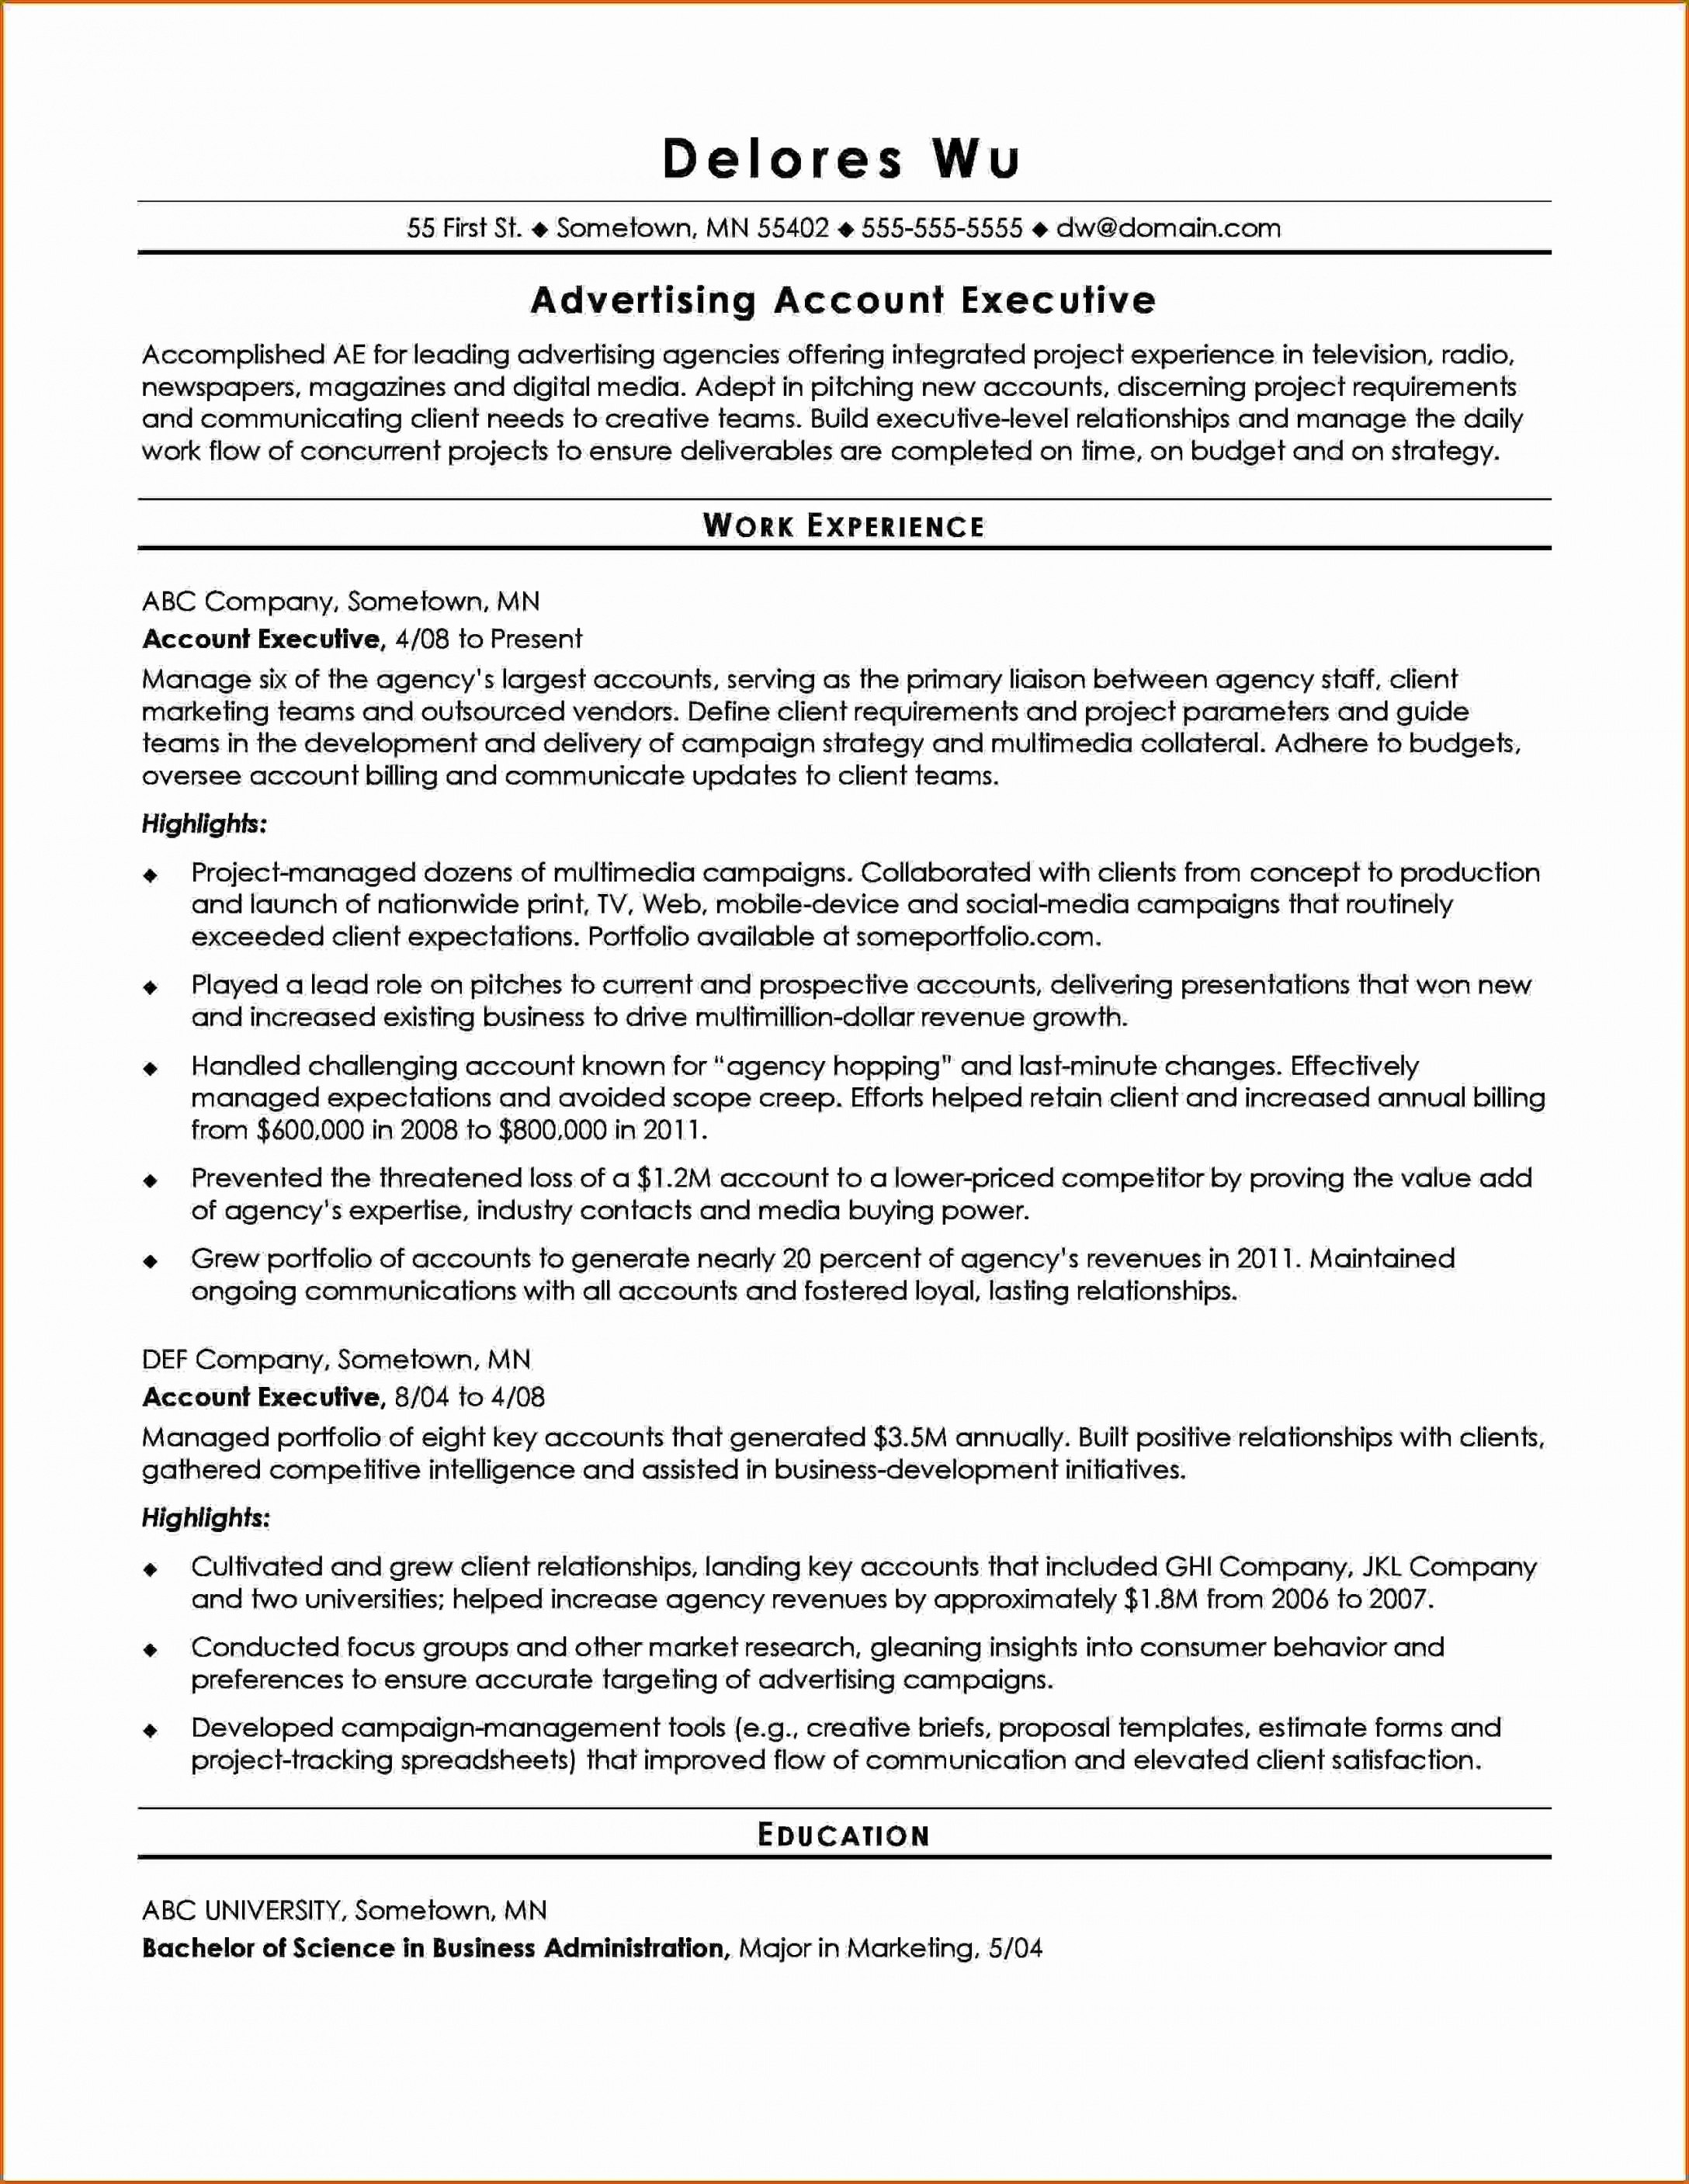 Service Level Agreement Template Ideas The Sample Of Advertising For Free Internet Advertising Contract Template